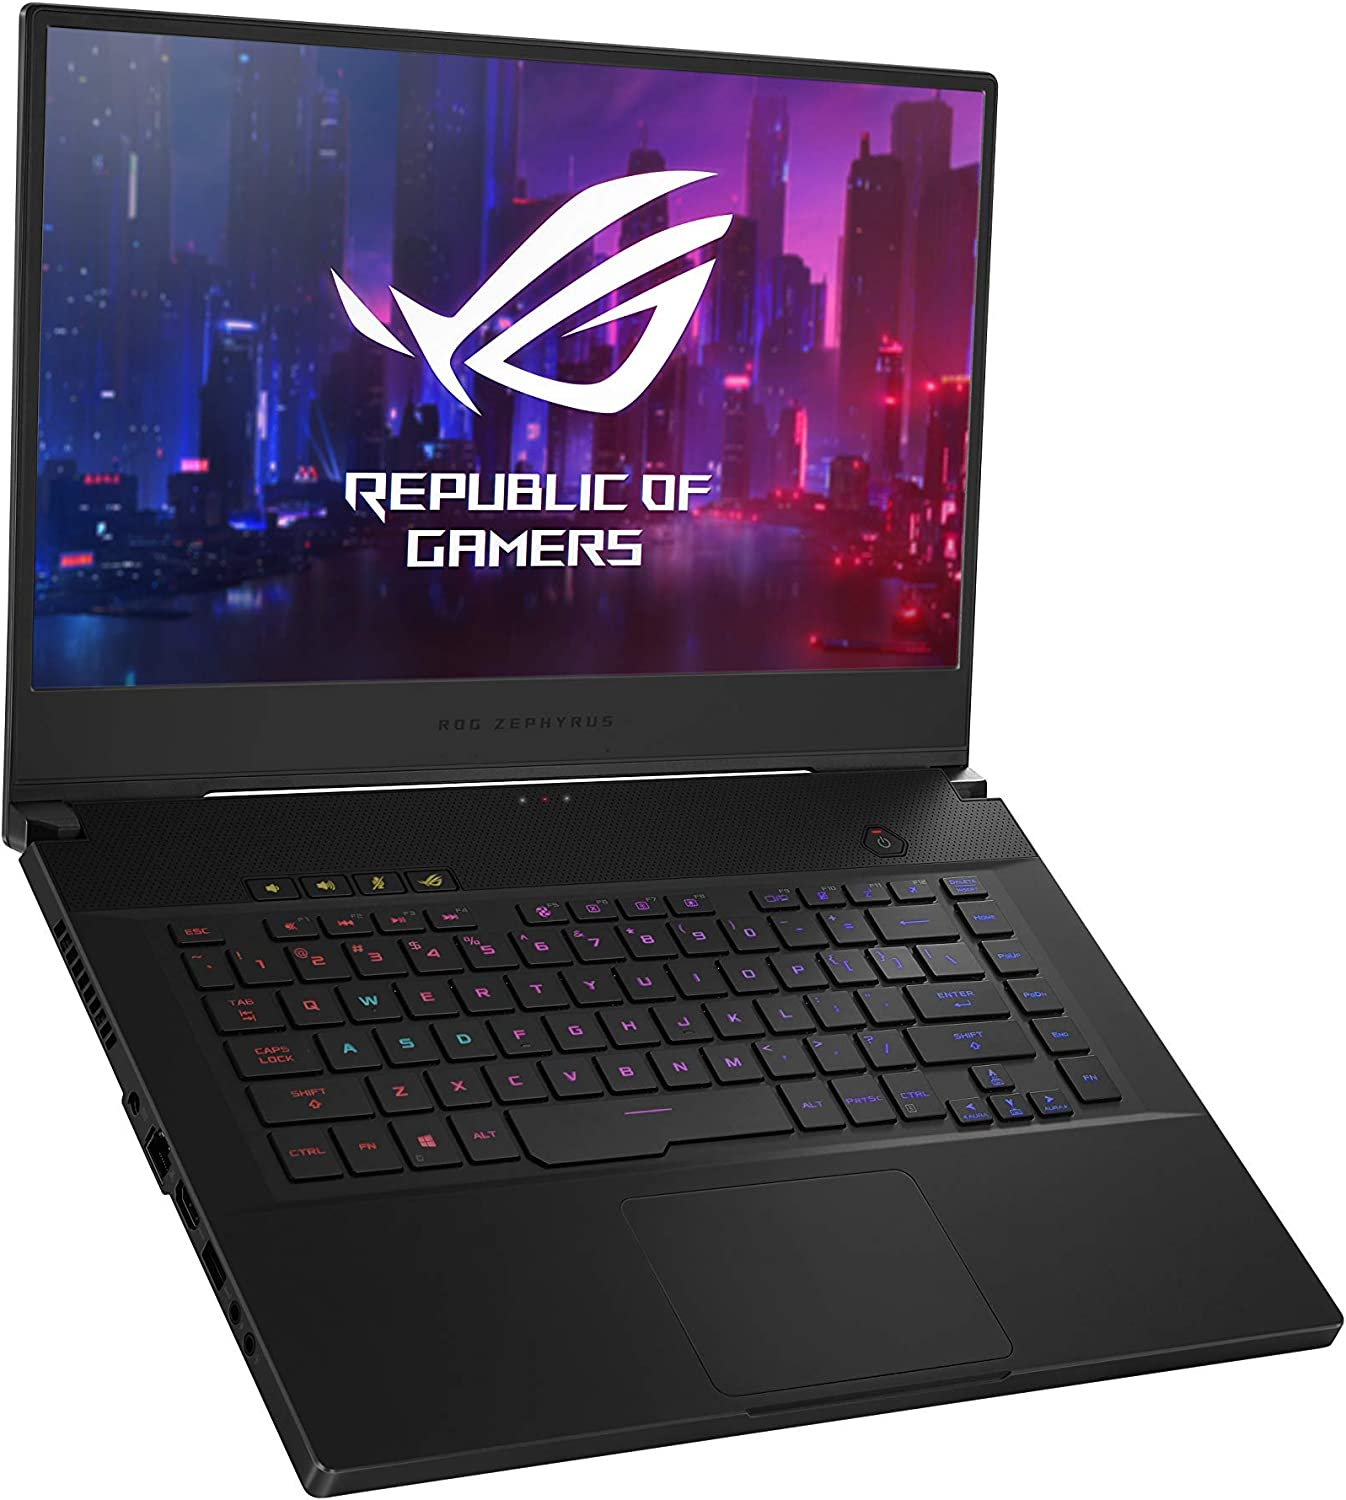 "ROG Zephyrus M Thin and Portable Gaming Laptop, 15.6"" 240Hz FHD IPS, NVIDIA GeForce RTX 2070, Intel Core i7-9750H, 16GB DDR4 RAM, 1TB PCIe SSD, Per-Key RGB, Windows 10 Home, GU502GW-AH76 (Renewed)"